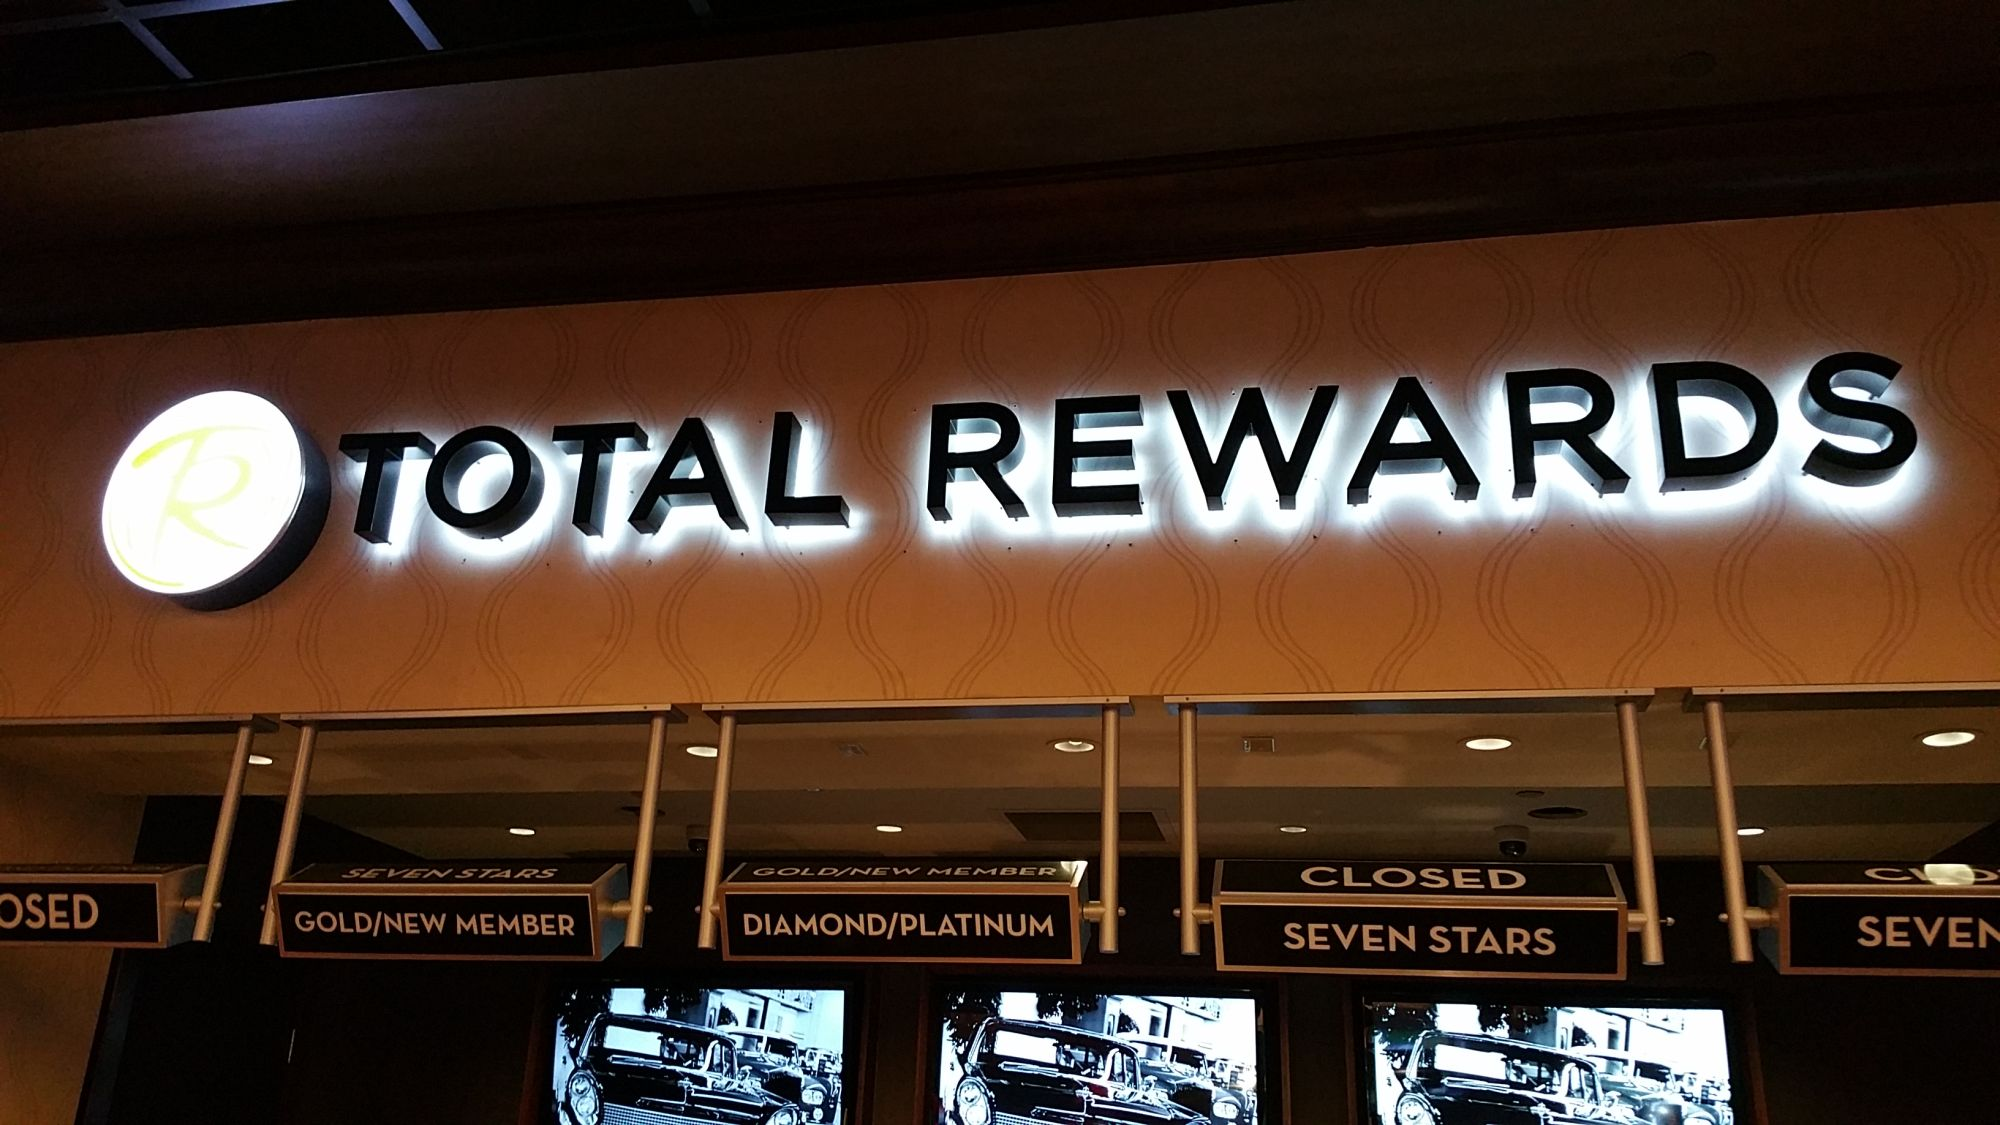 Total Rewards A Great Loyalty Program For Las Vegas And Beyond Gate To Adventures